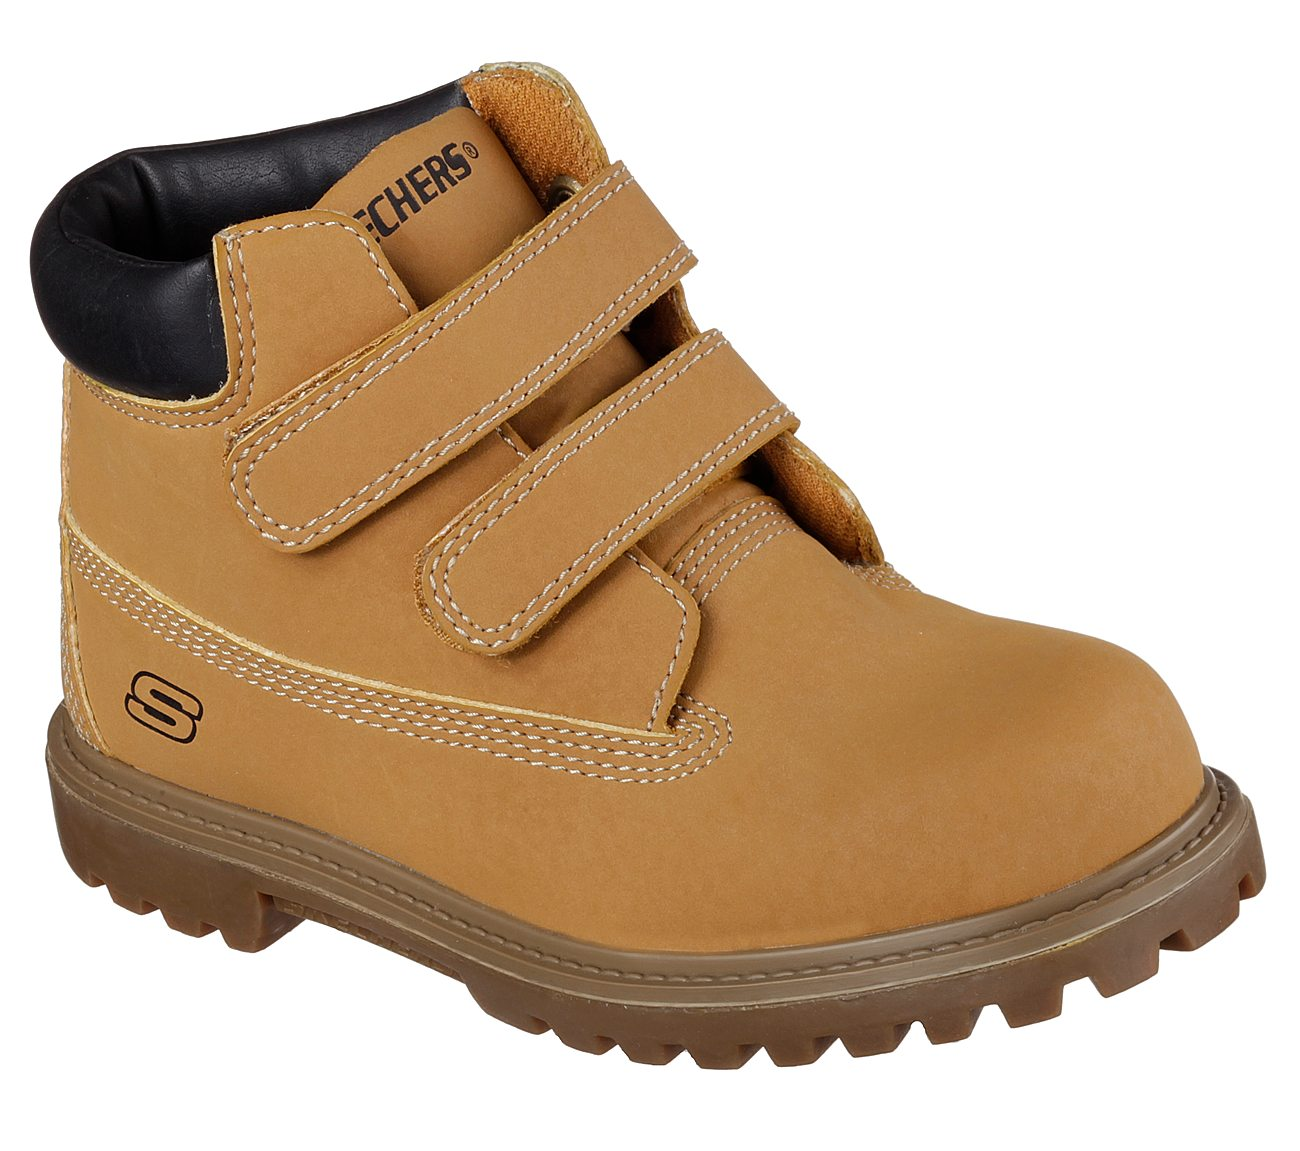 SKECHERS Mecca - Sawmill Casual Boots Shoes